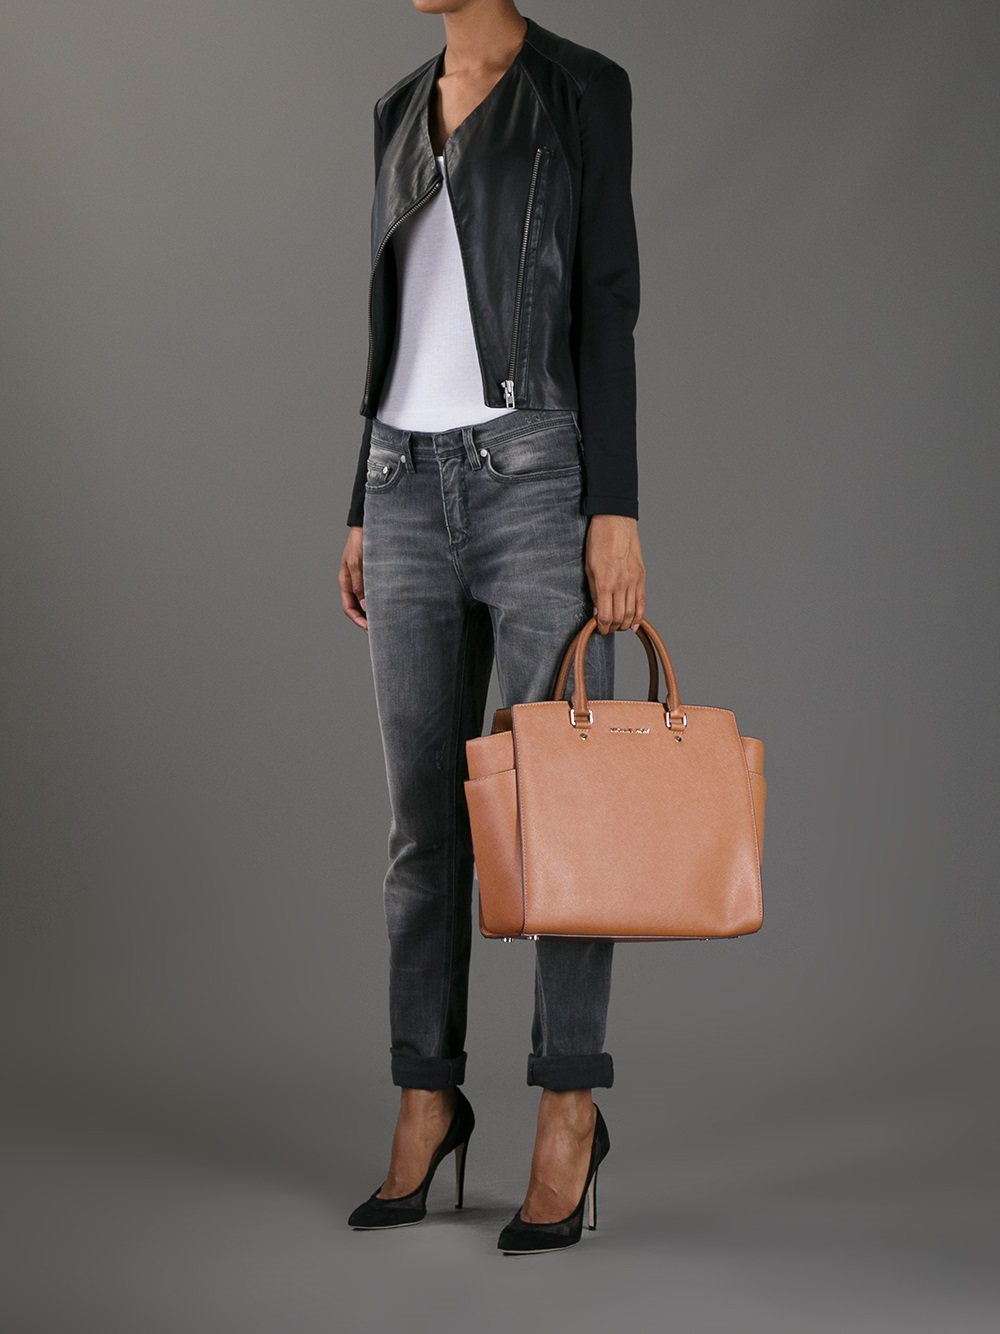 Gallery Previously Sold At Farfetch Women S Michael By Kors Selma